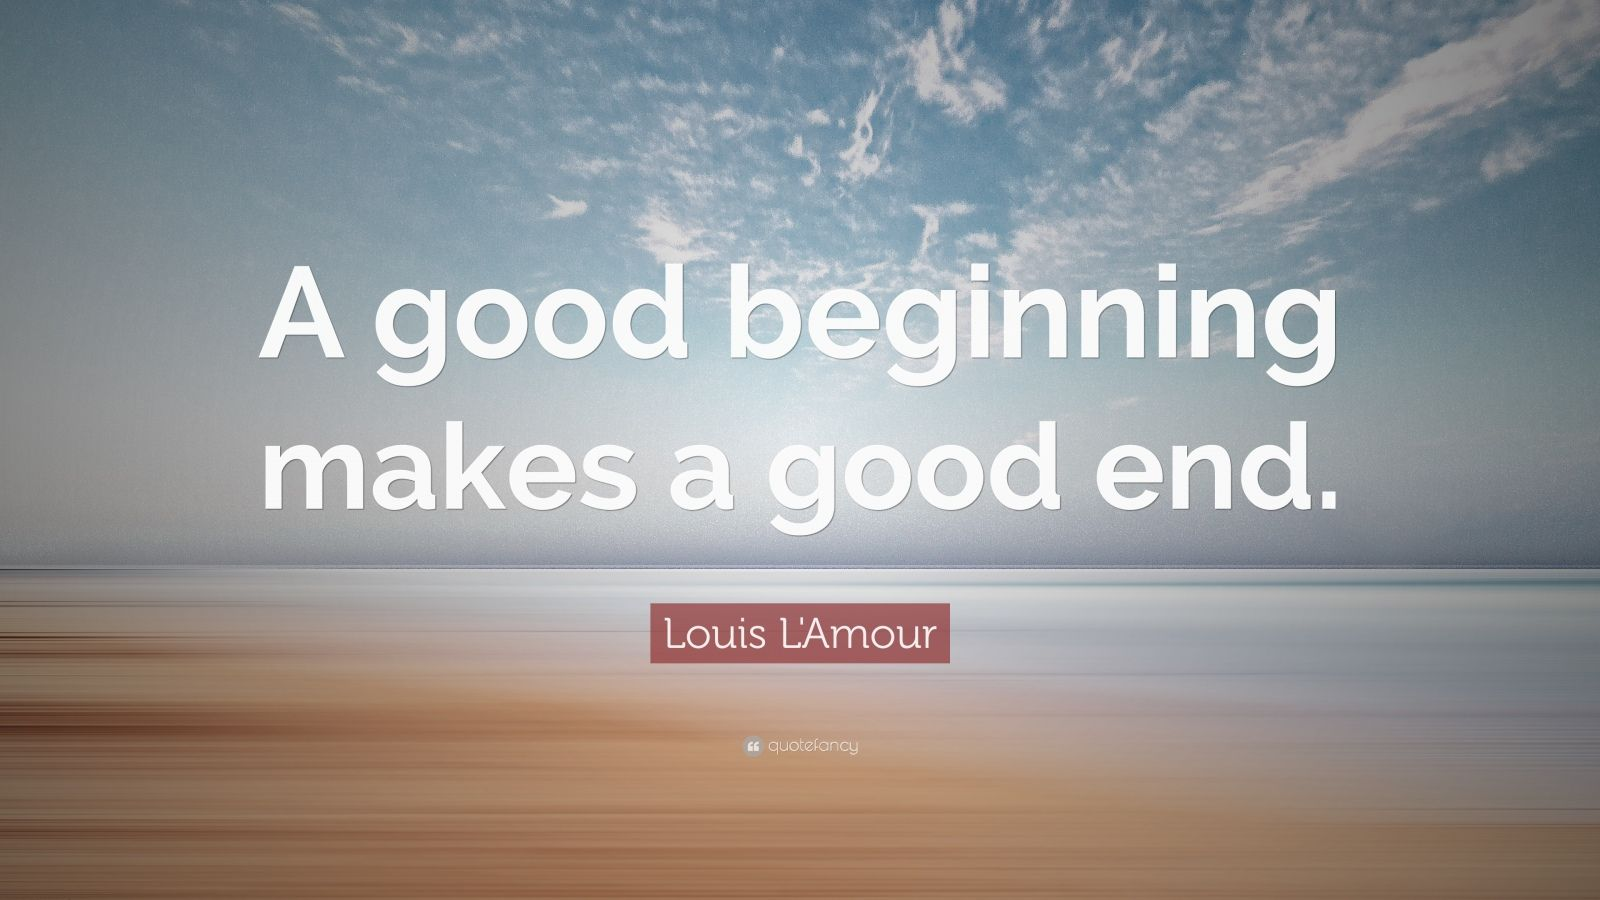 a good beginning makes a good ending